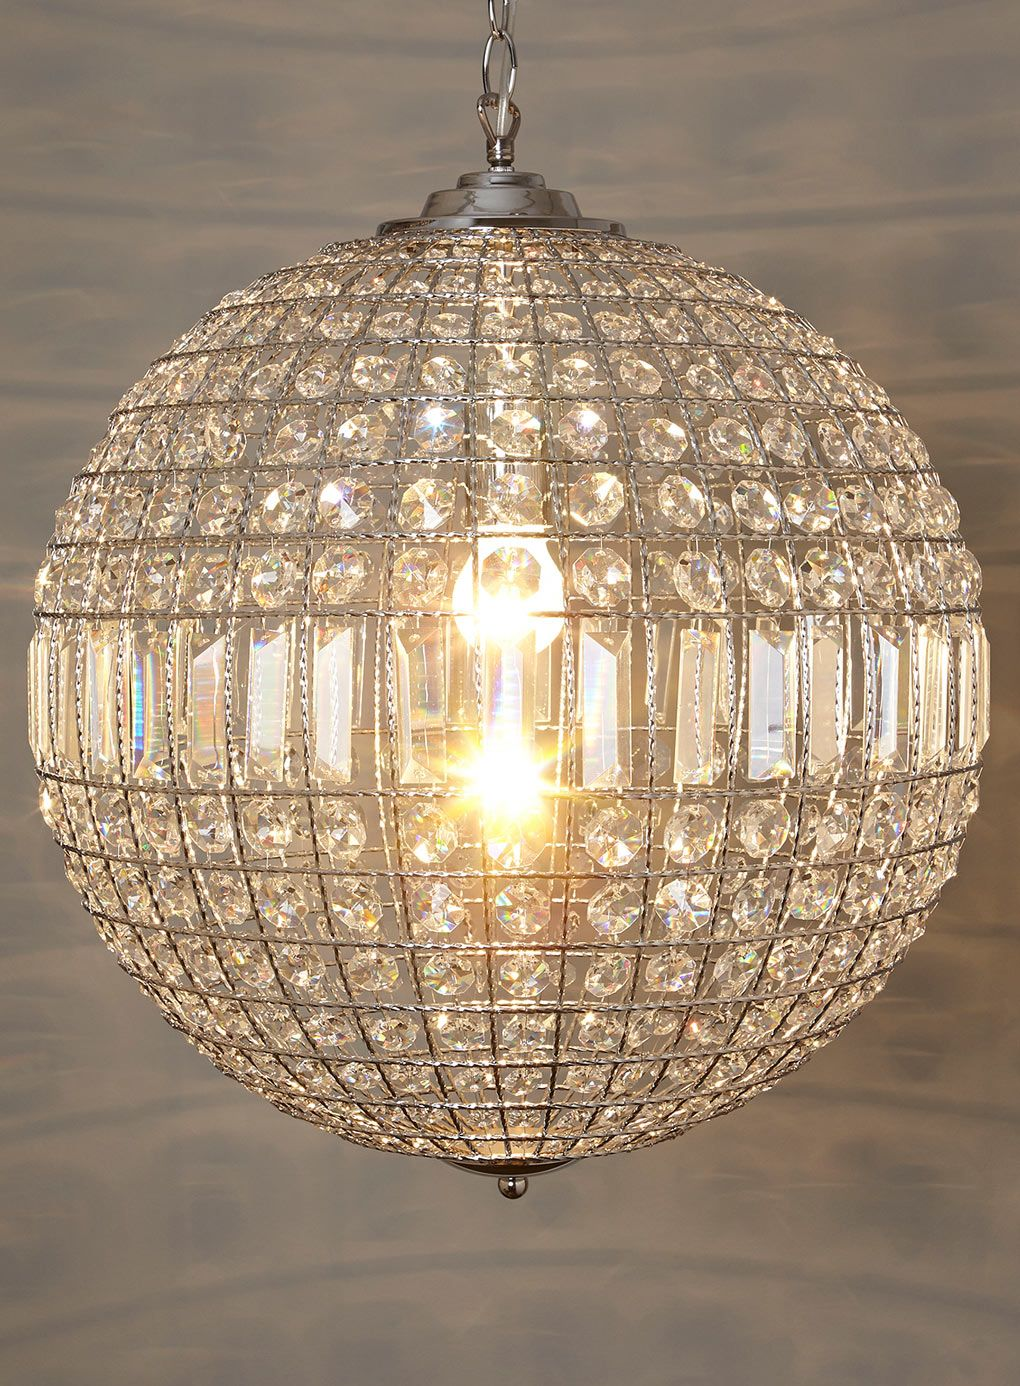 Ursula Large Crystal Ball Pendant Lighting Home